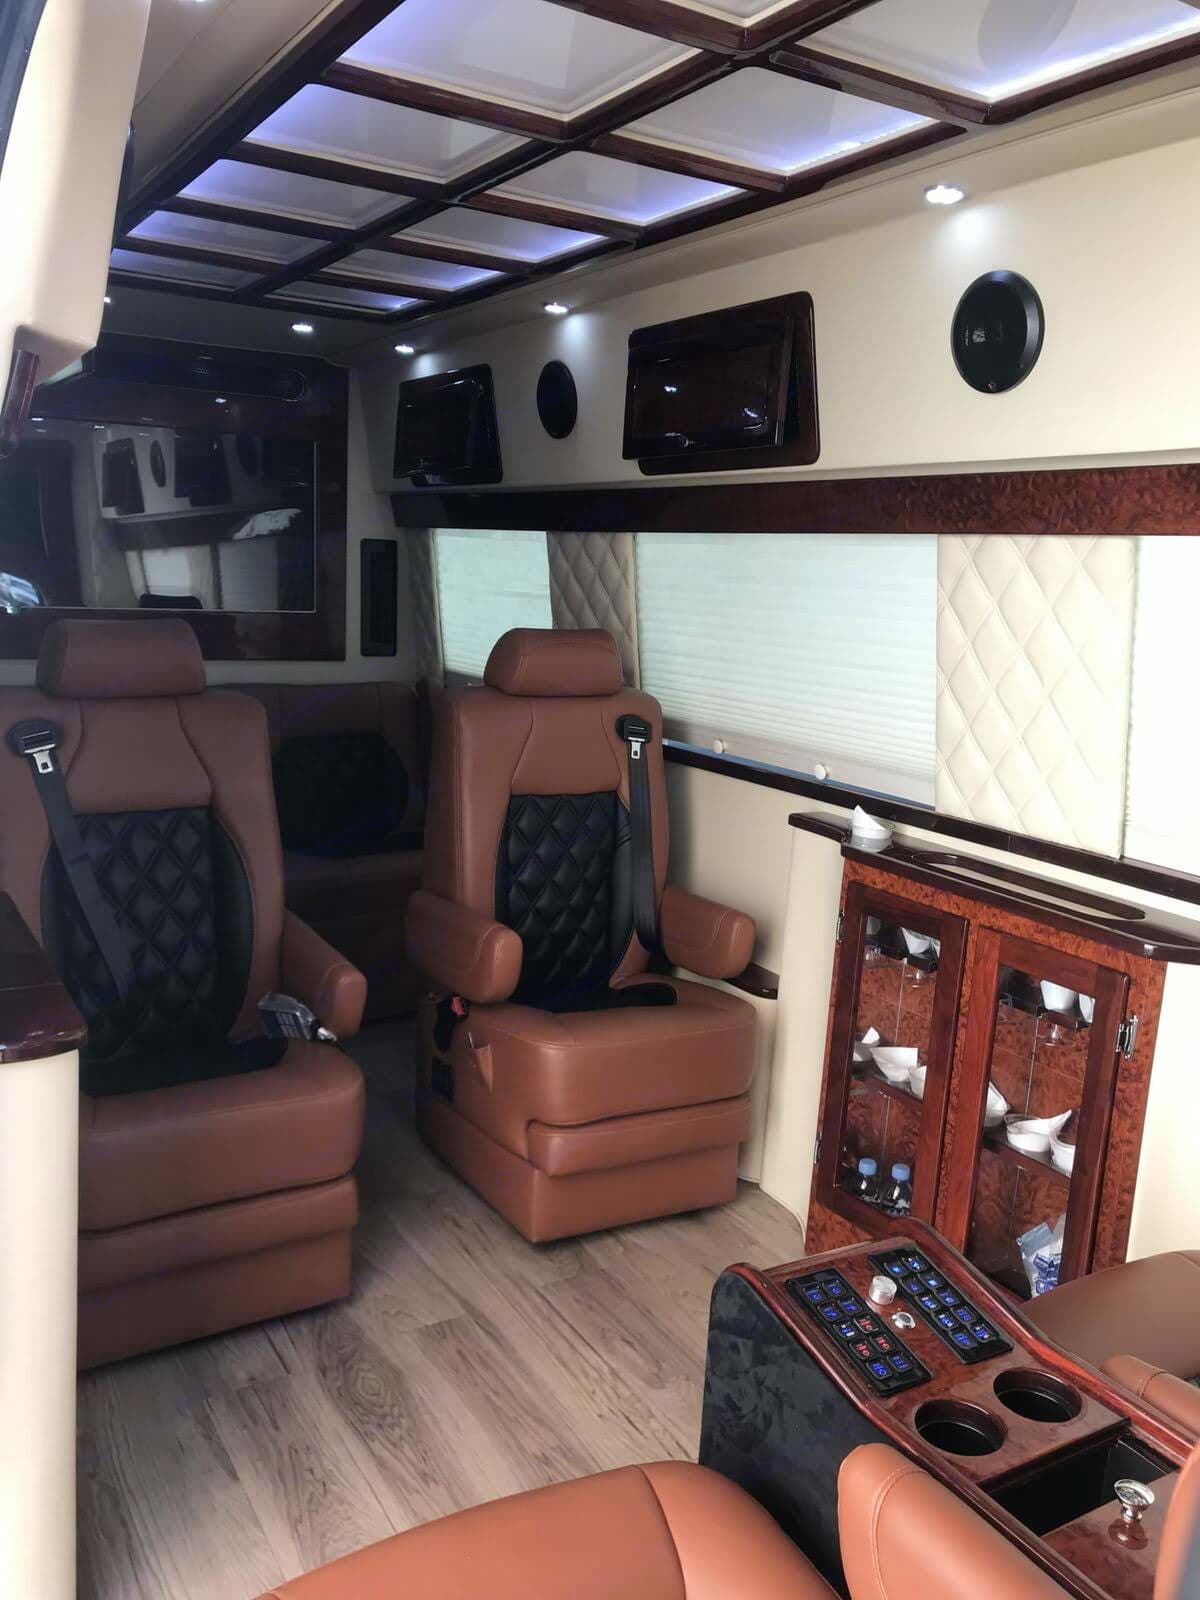 Our captain chairs I have options for you to I have your chair heated, cooled, as well as 13 different massage settings. Put the seat back grab a  PlayStation 4 controller and enjoy without realizing 12 hours went by.. Mercedes-Benz Sprinter 2013